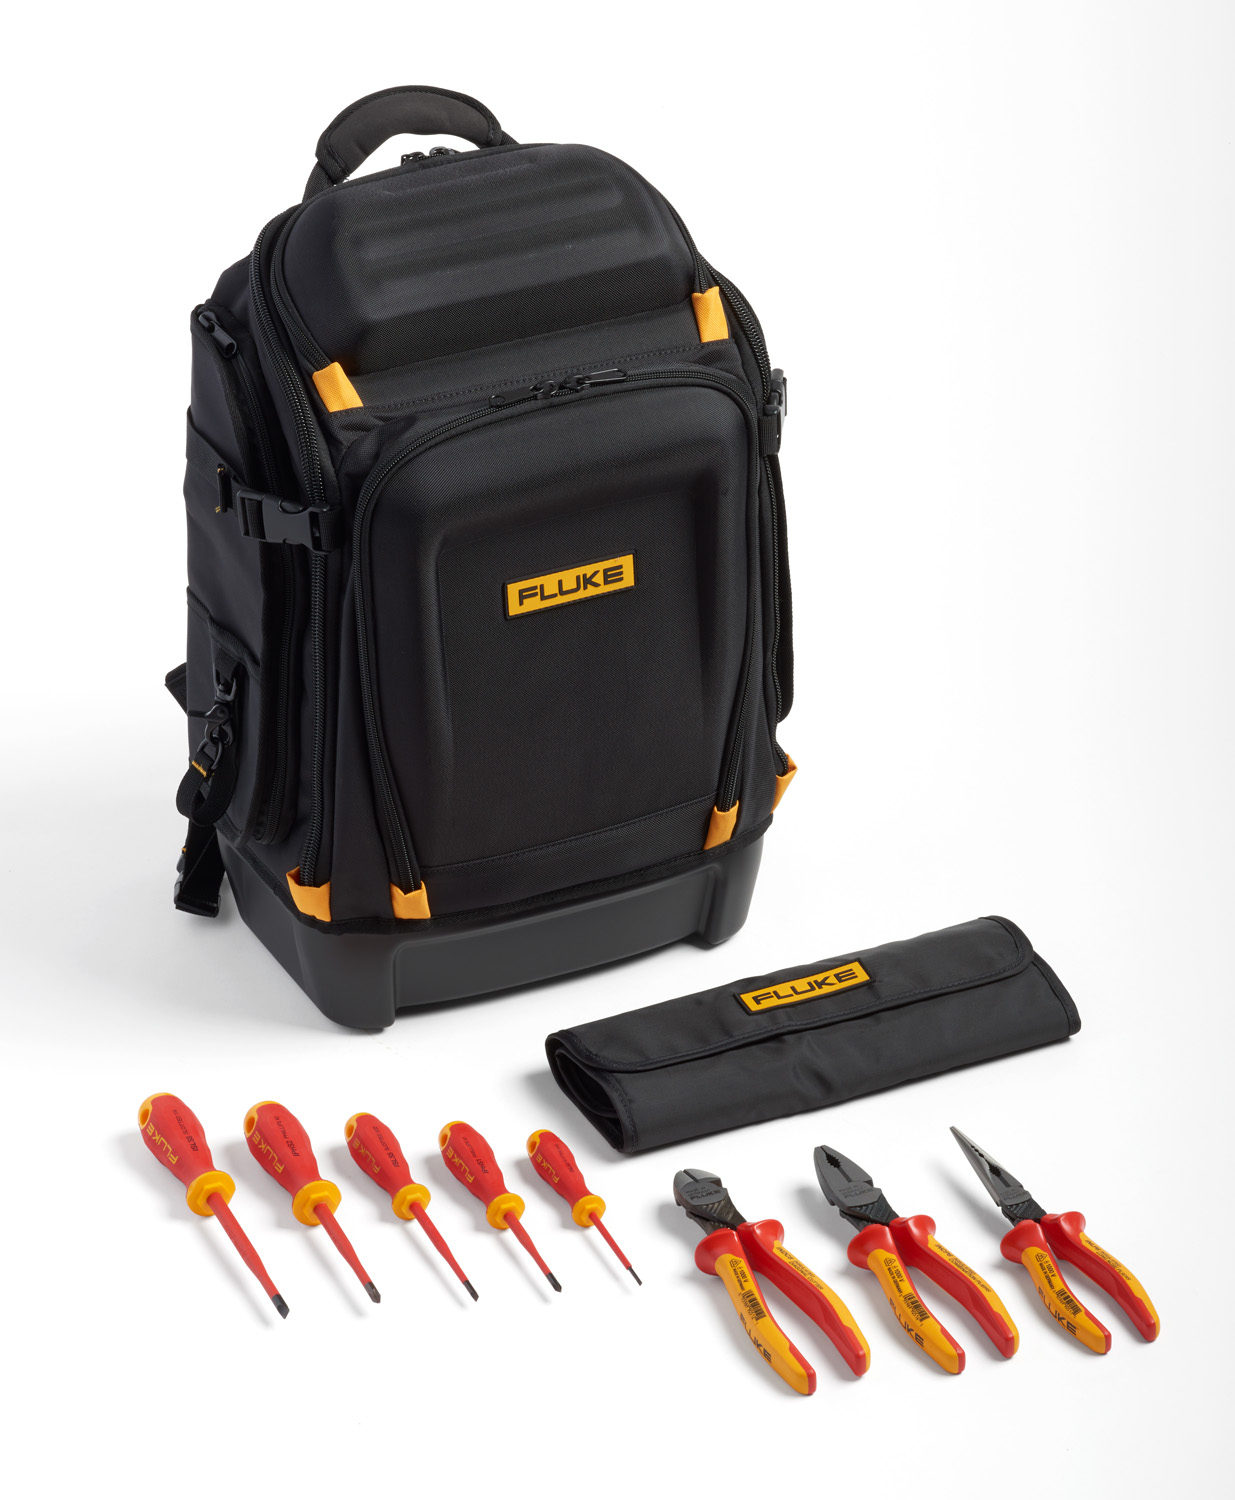 Fluke IKPK7 Insulated Hand Tools Starter Kit with Professional Backpack